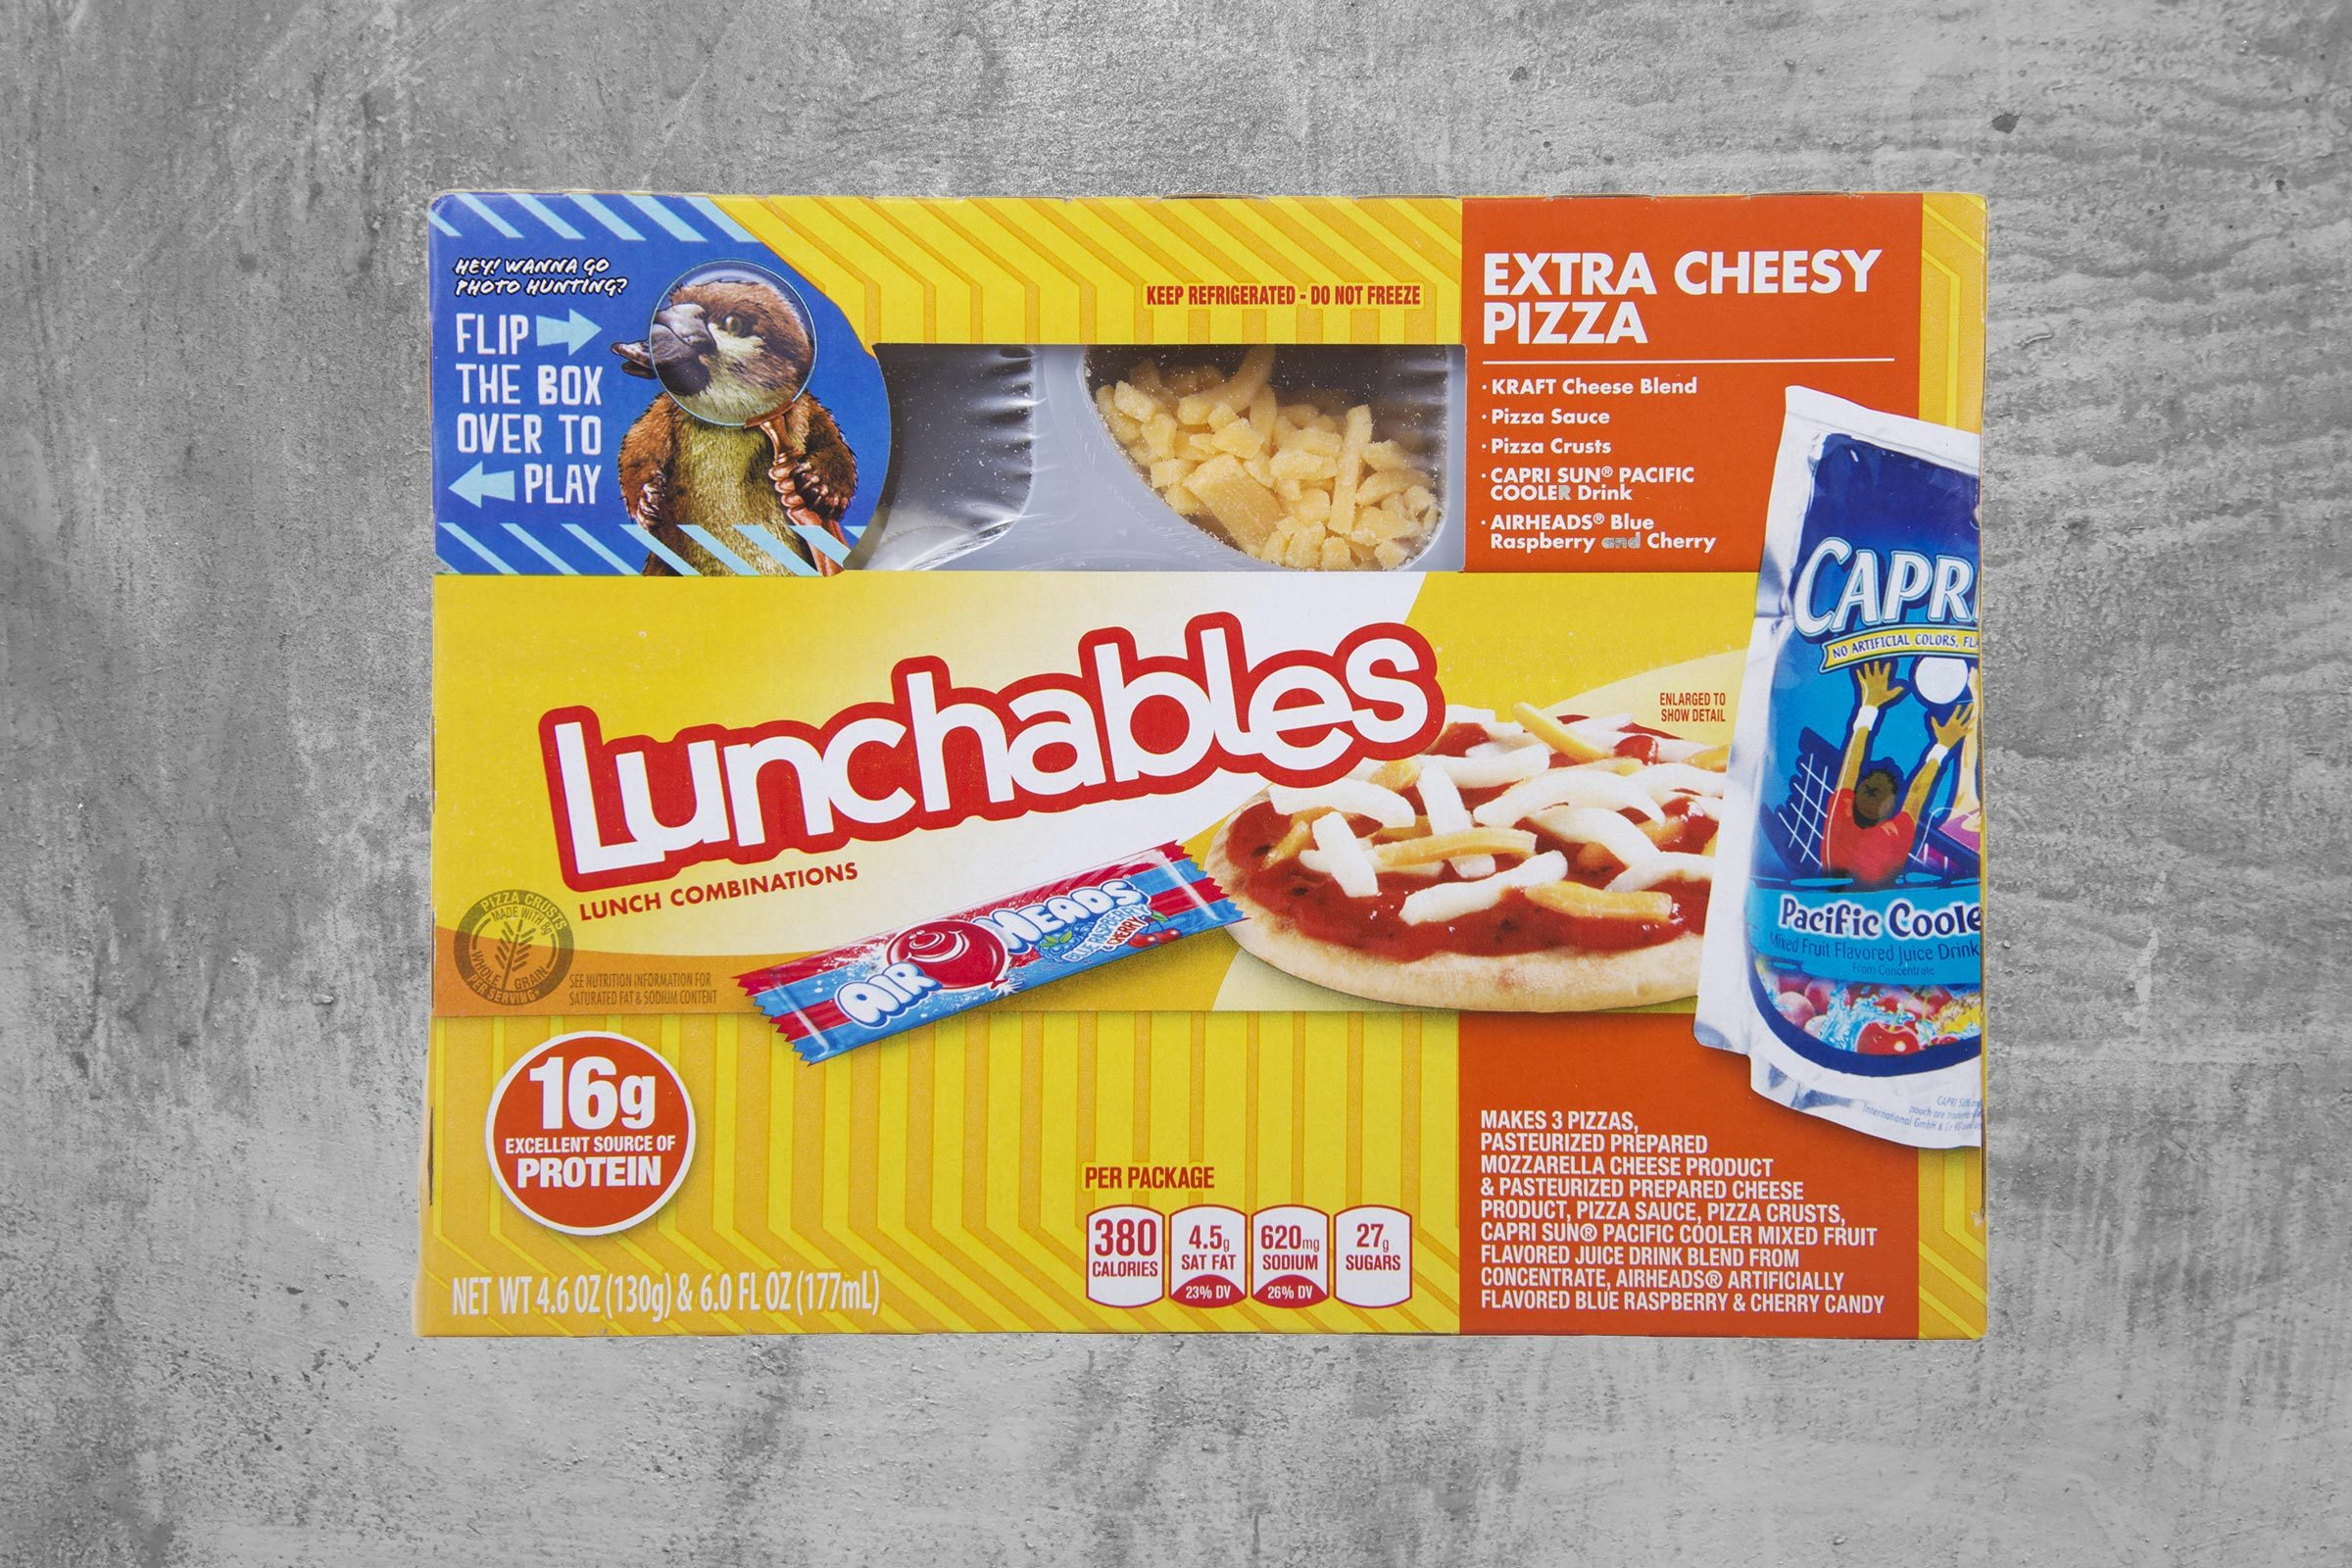 lunchables packaged kids' meal kit